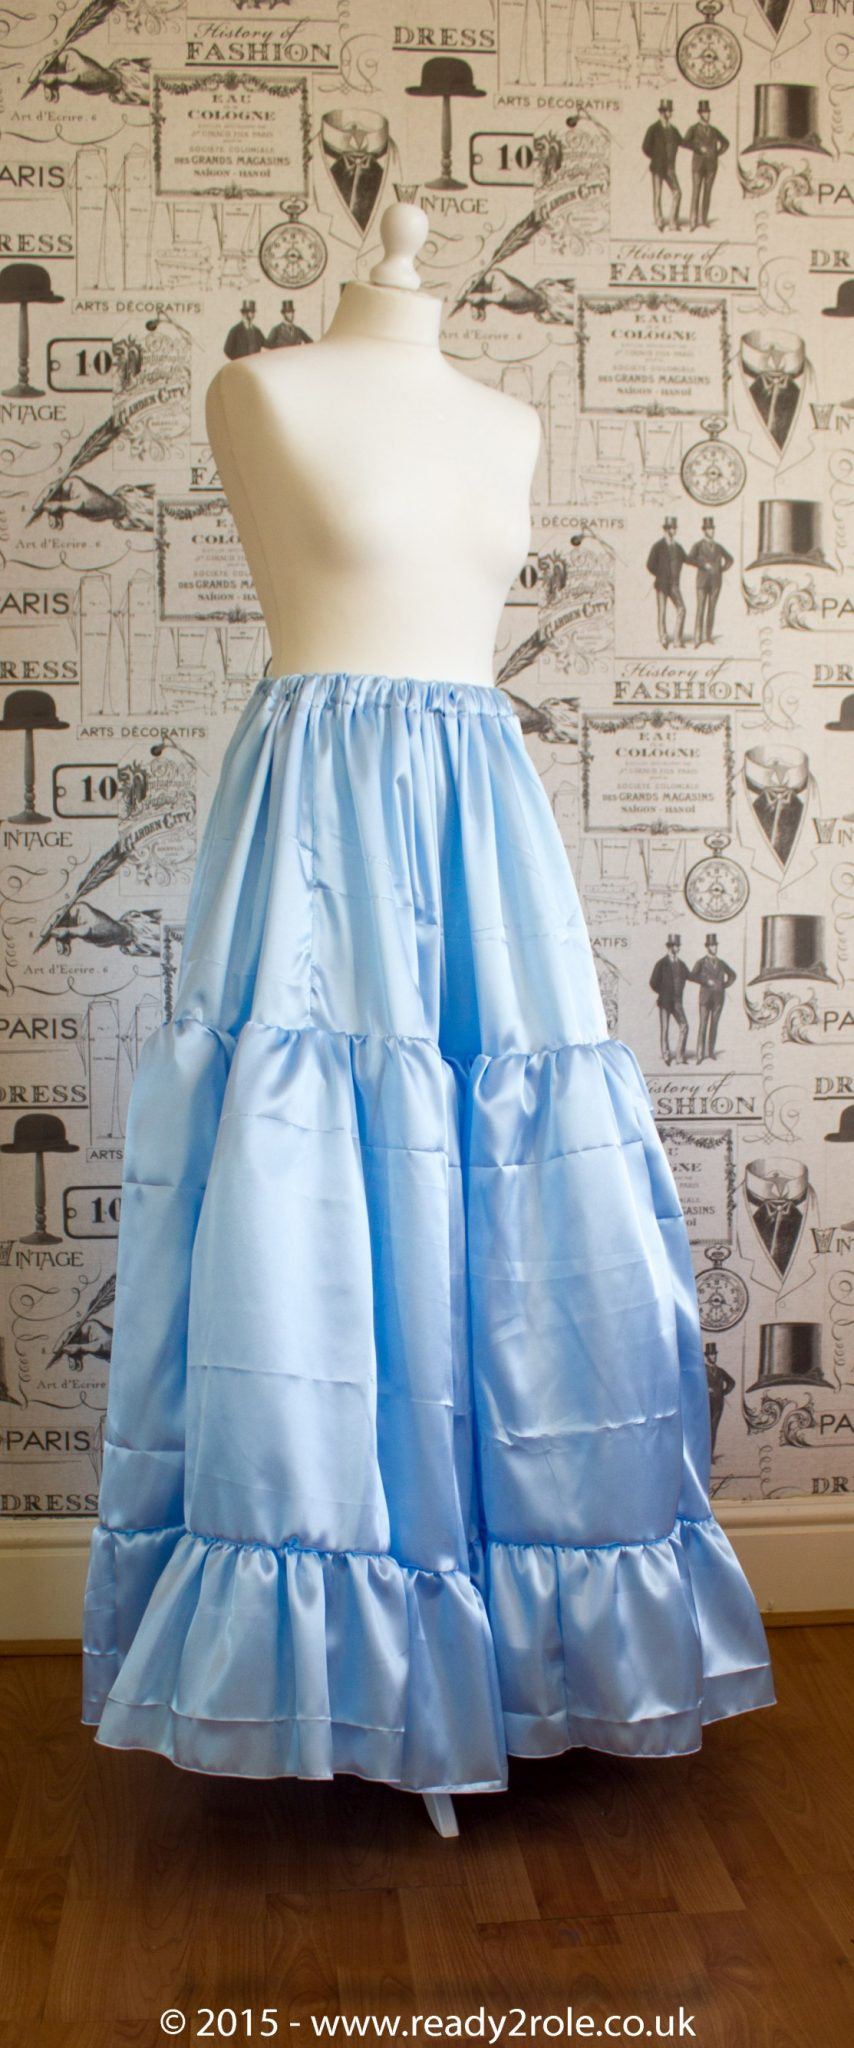 Sissy Frilly Hand Crafted Petticoat – Baby Blue Satin – Longer Length